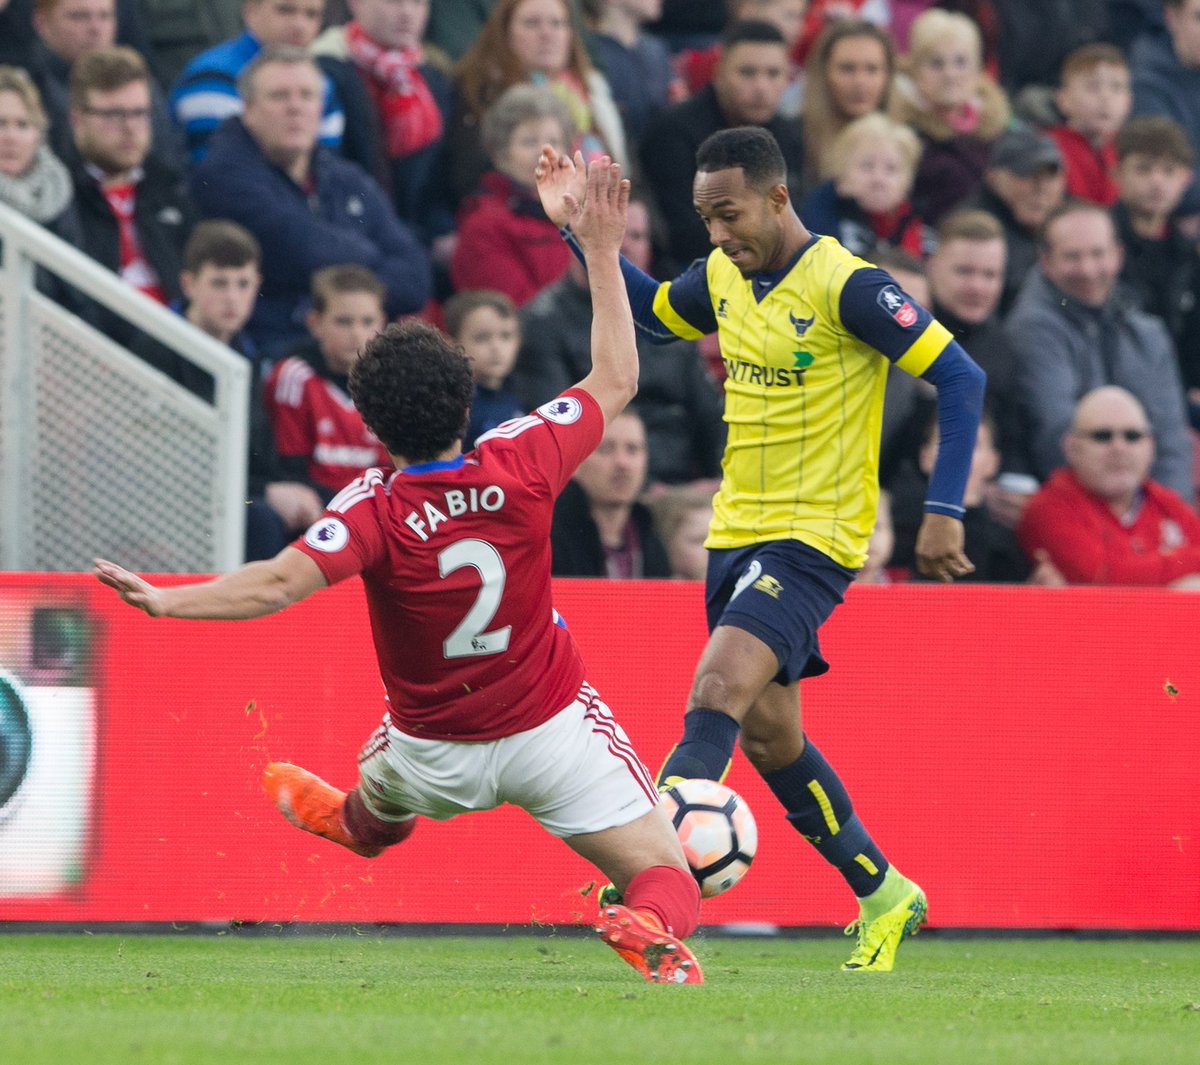 Oxford United to face Middlesbrough on pre-season tour in Portugal htt...